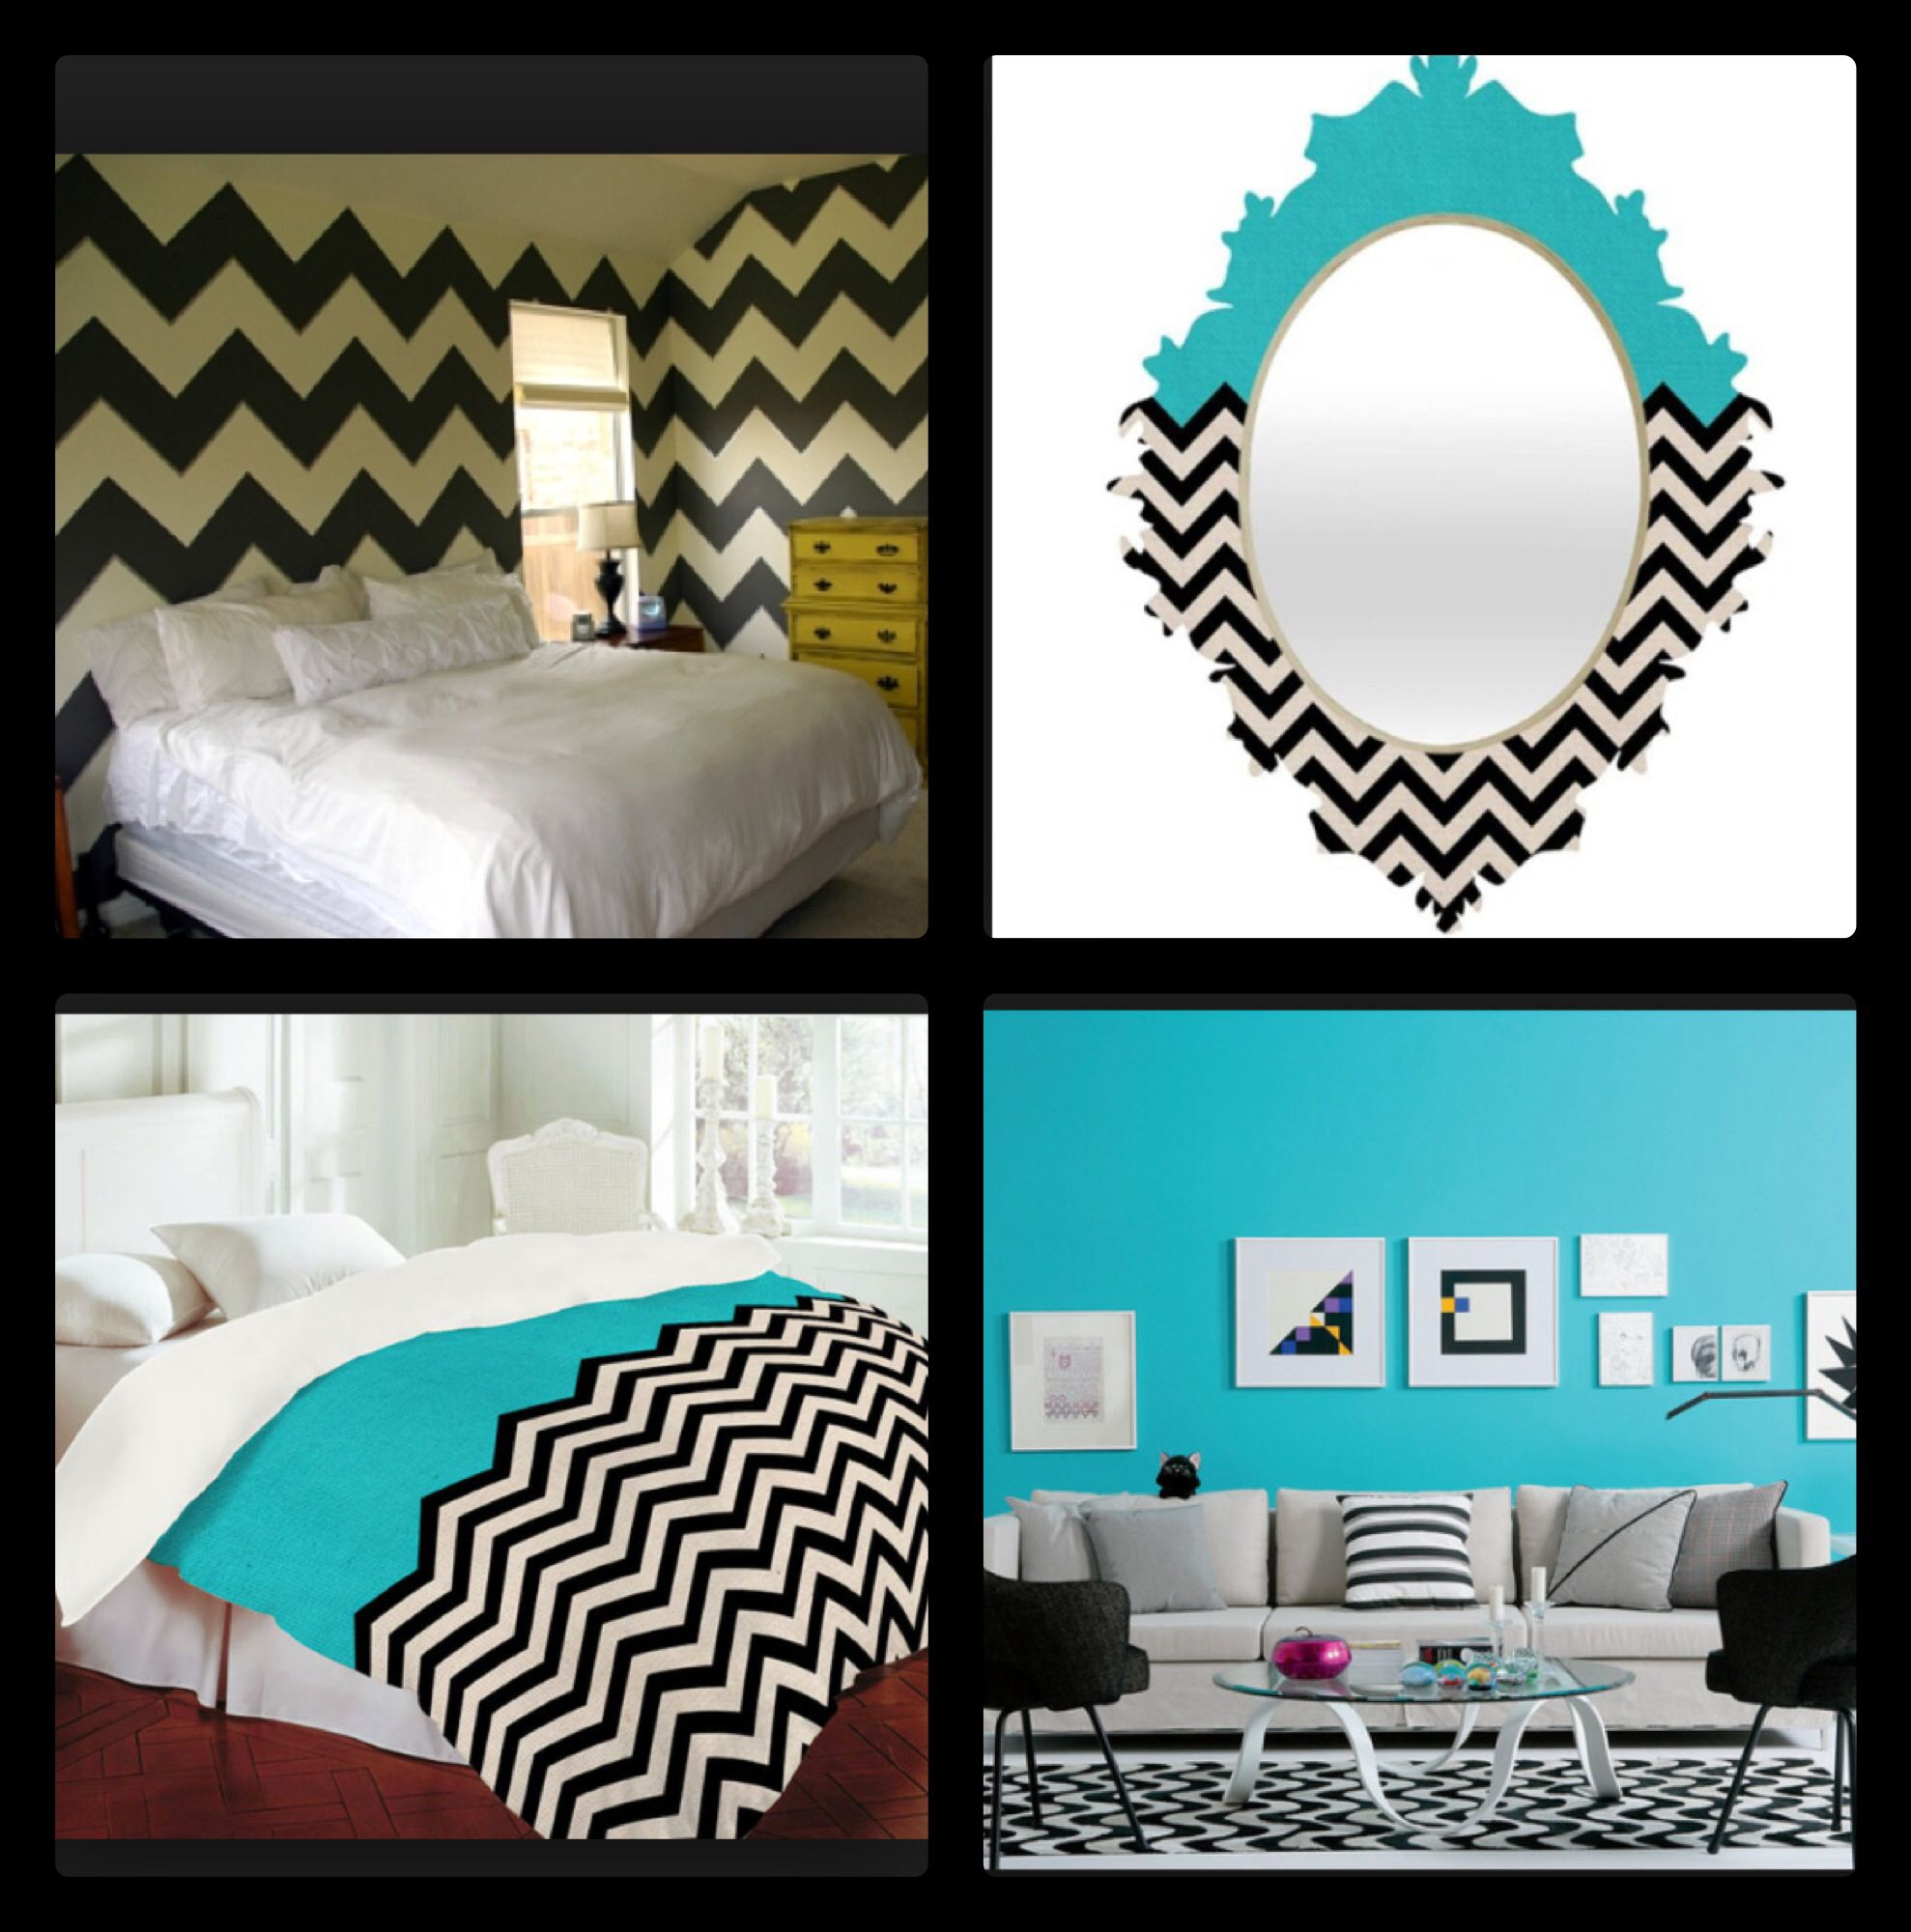 Turquoise, Black, and White Chevron Room Ideas | Room DIYs ...